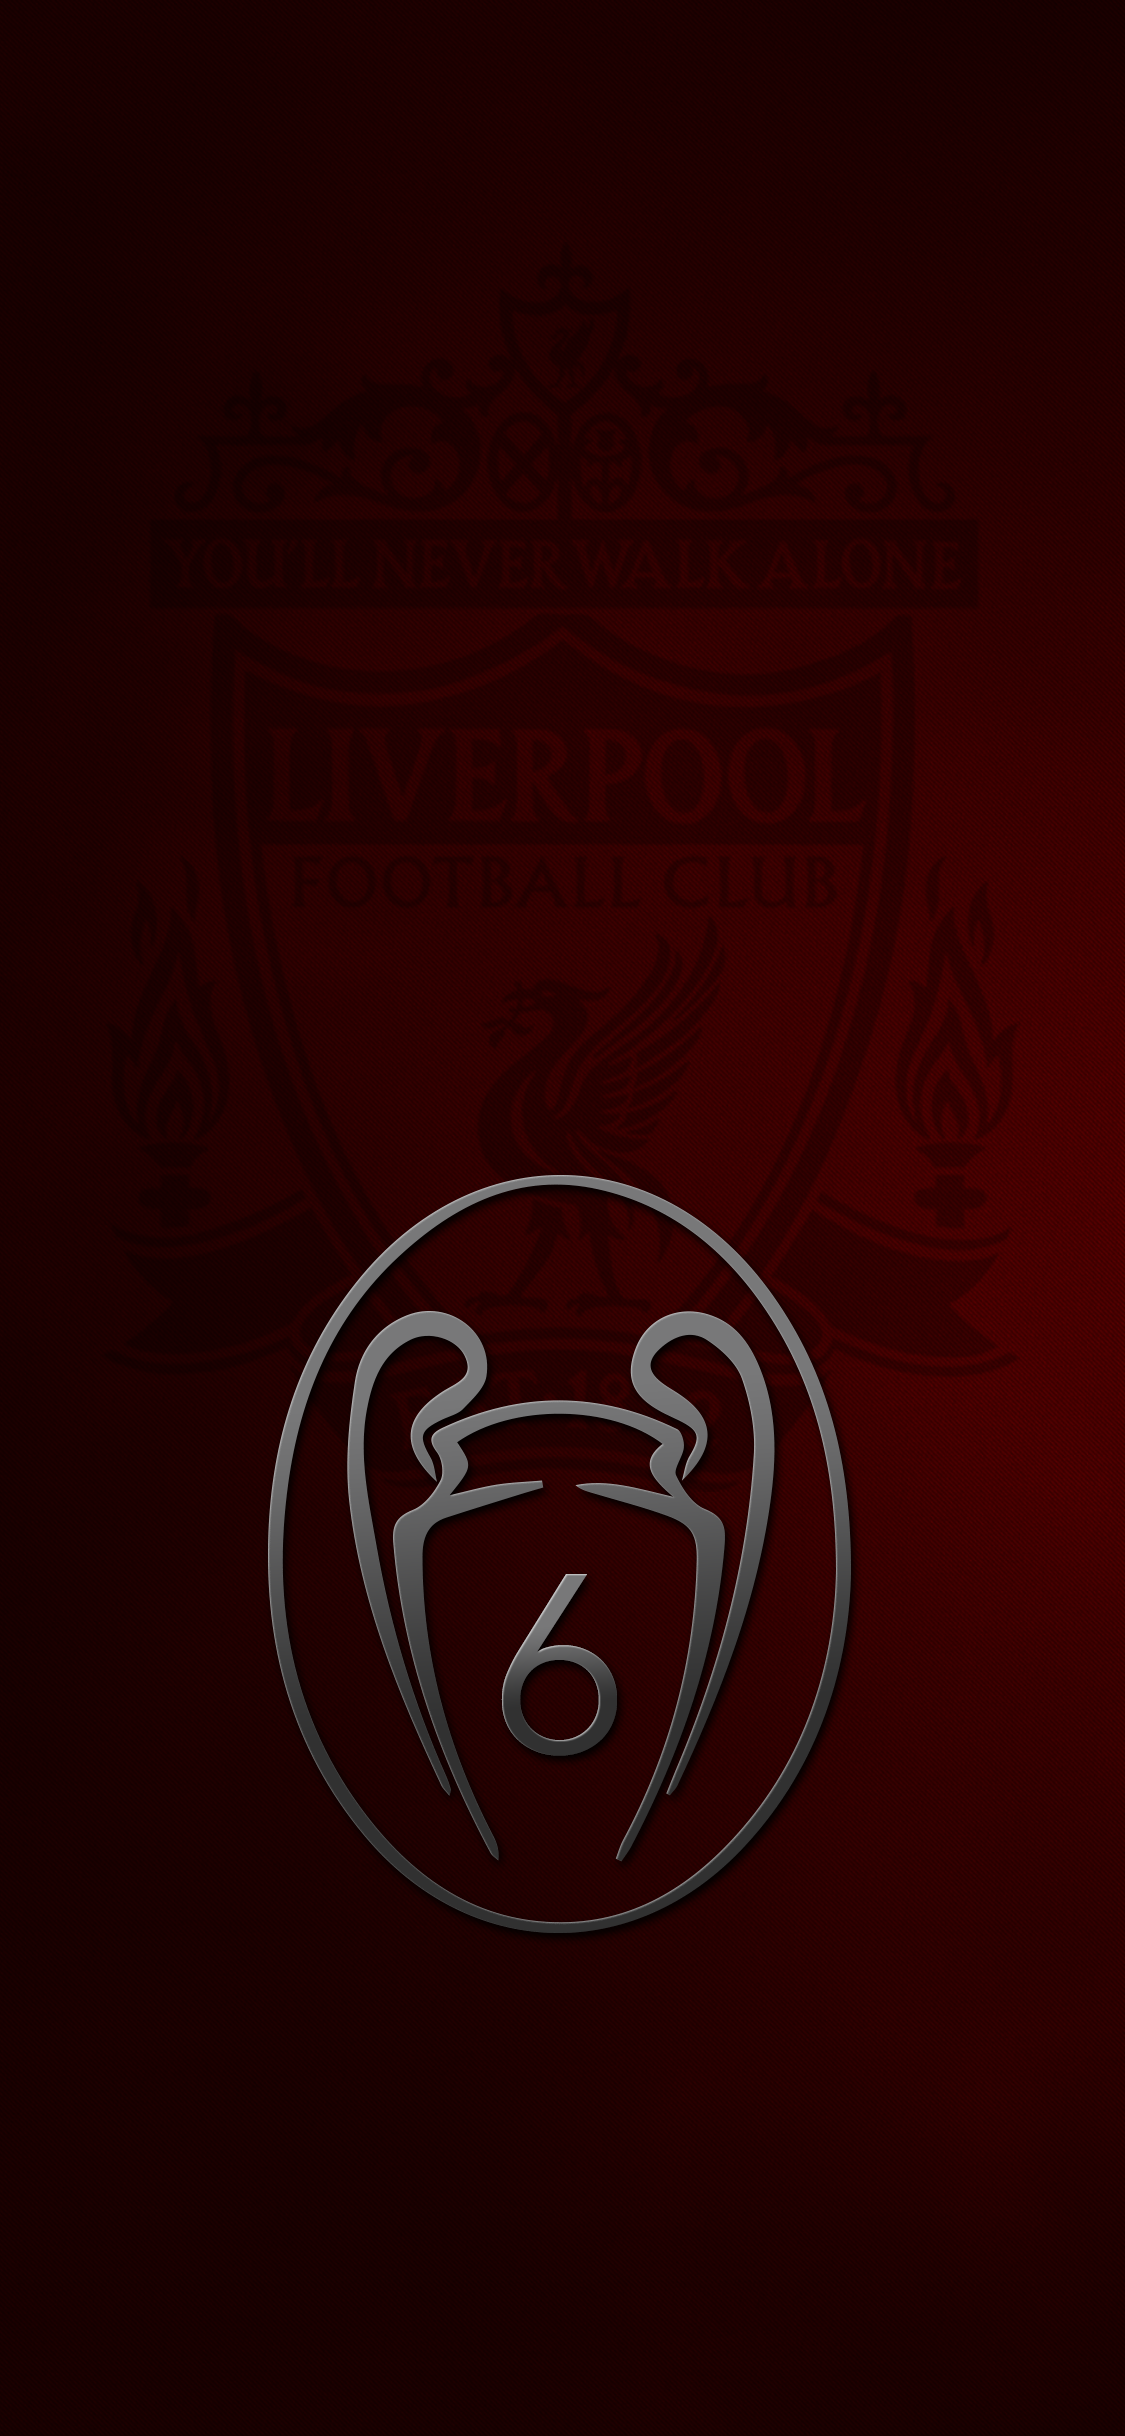 Download Wallpaper Liverpool Fc Hd Cikimm Com